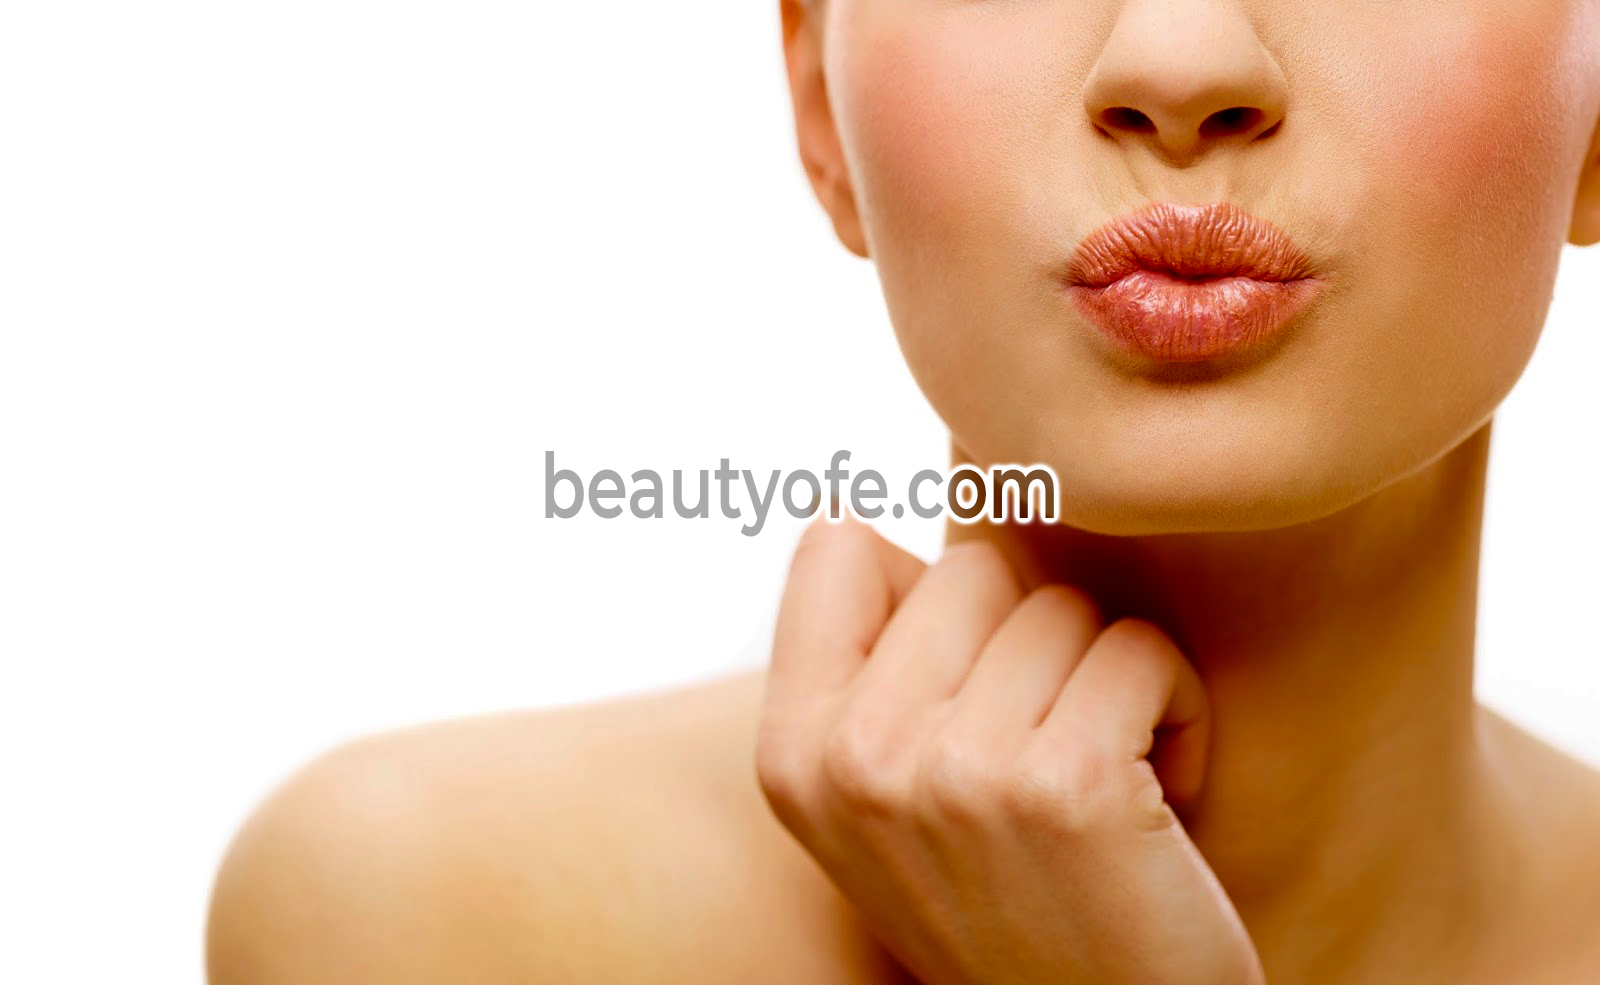 Vitamin E oil uses and benefits for lips